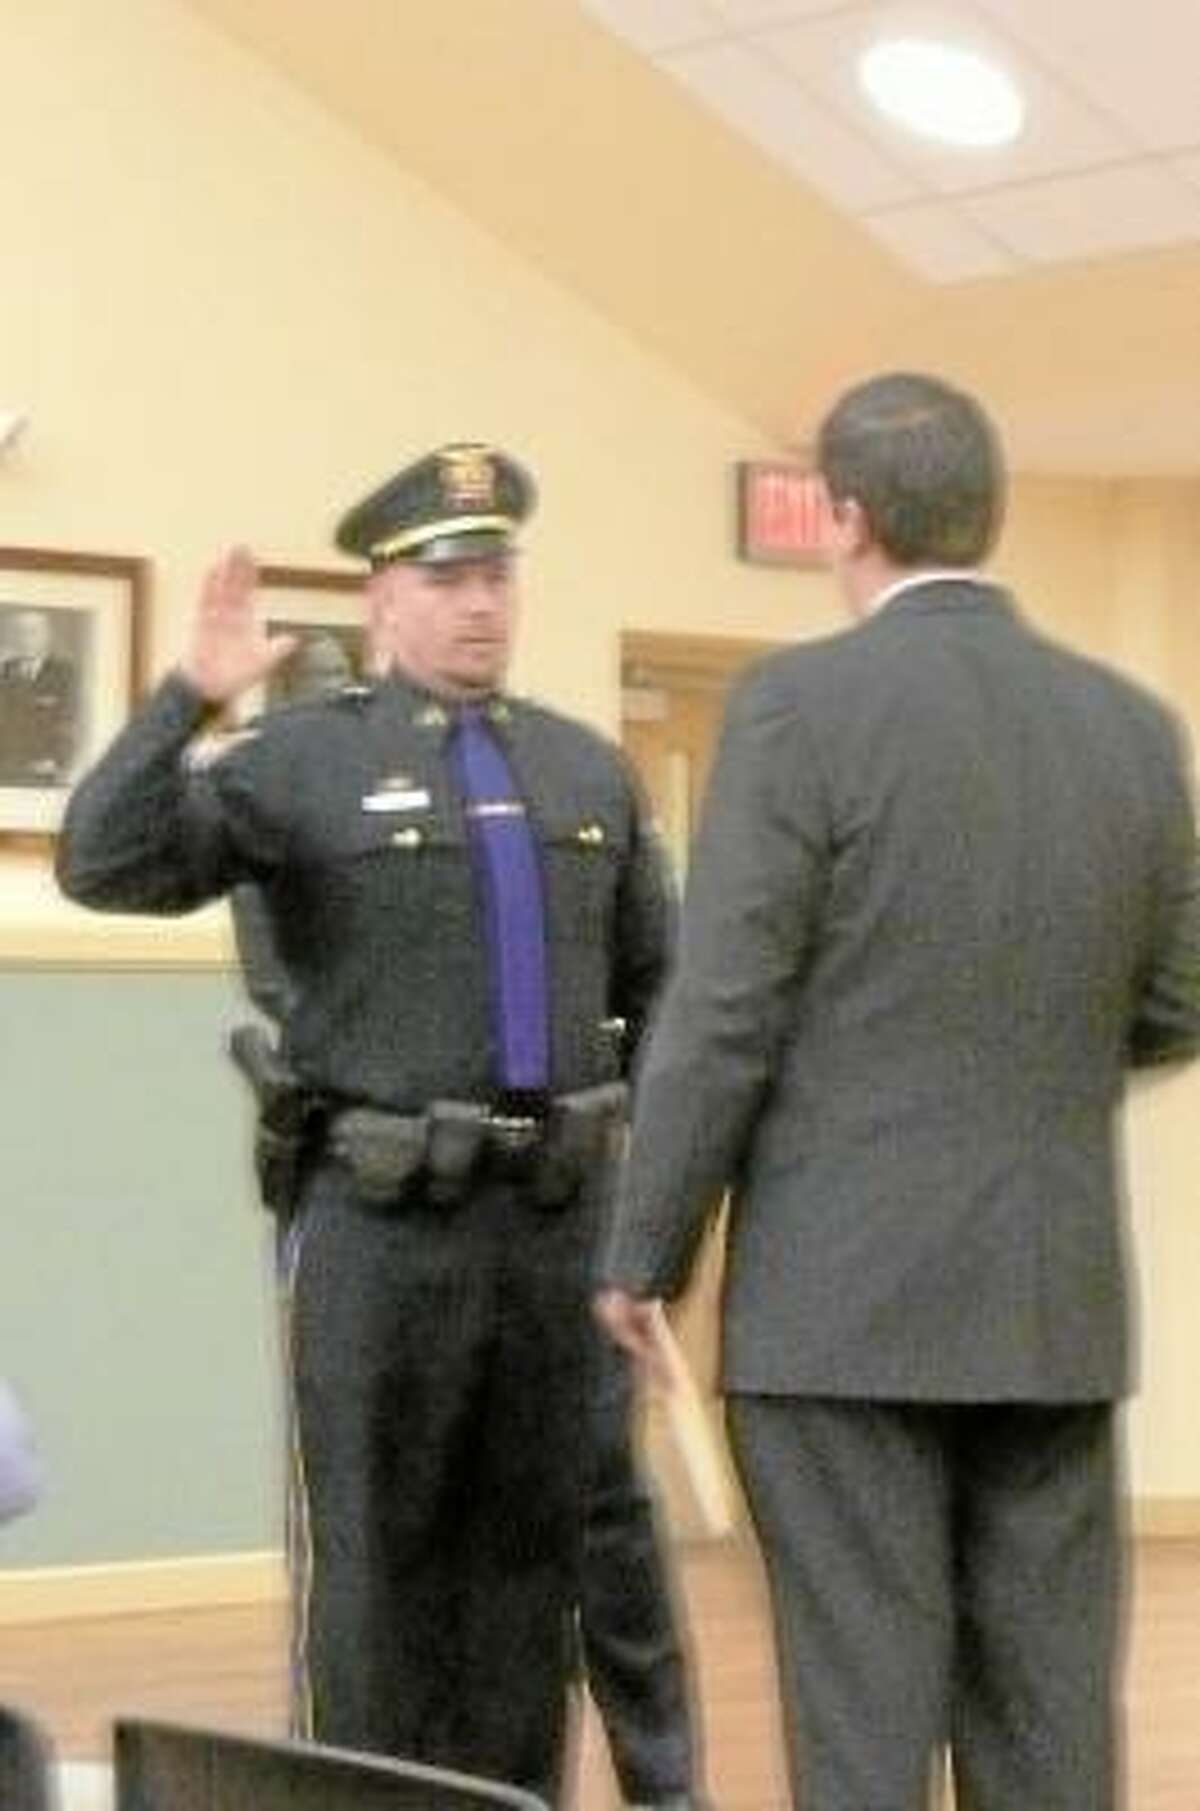 Gregory Wityak was promoted to Sergeant at Board of Public Safety meeting.